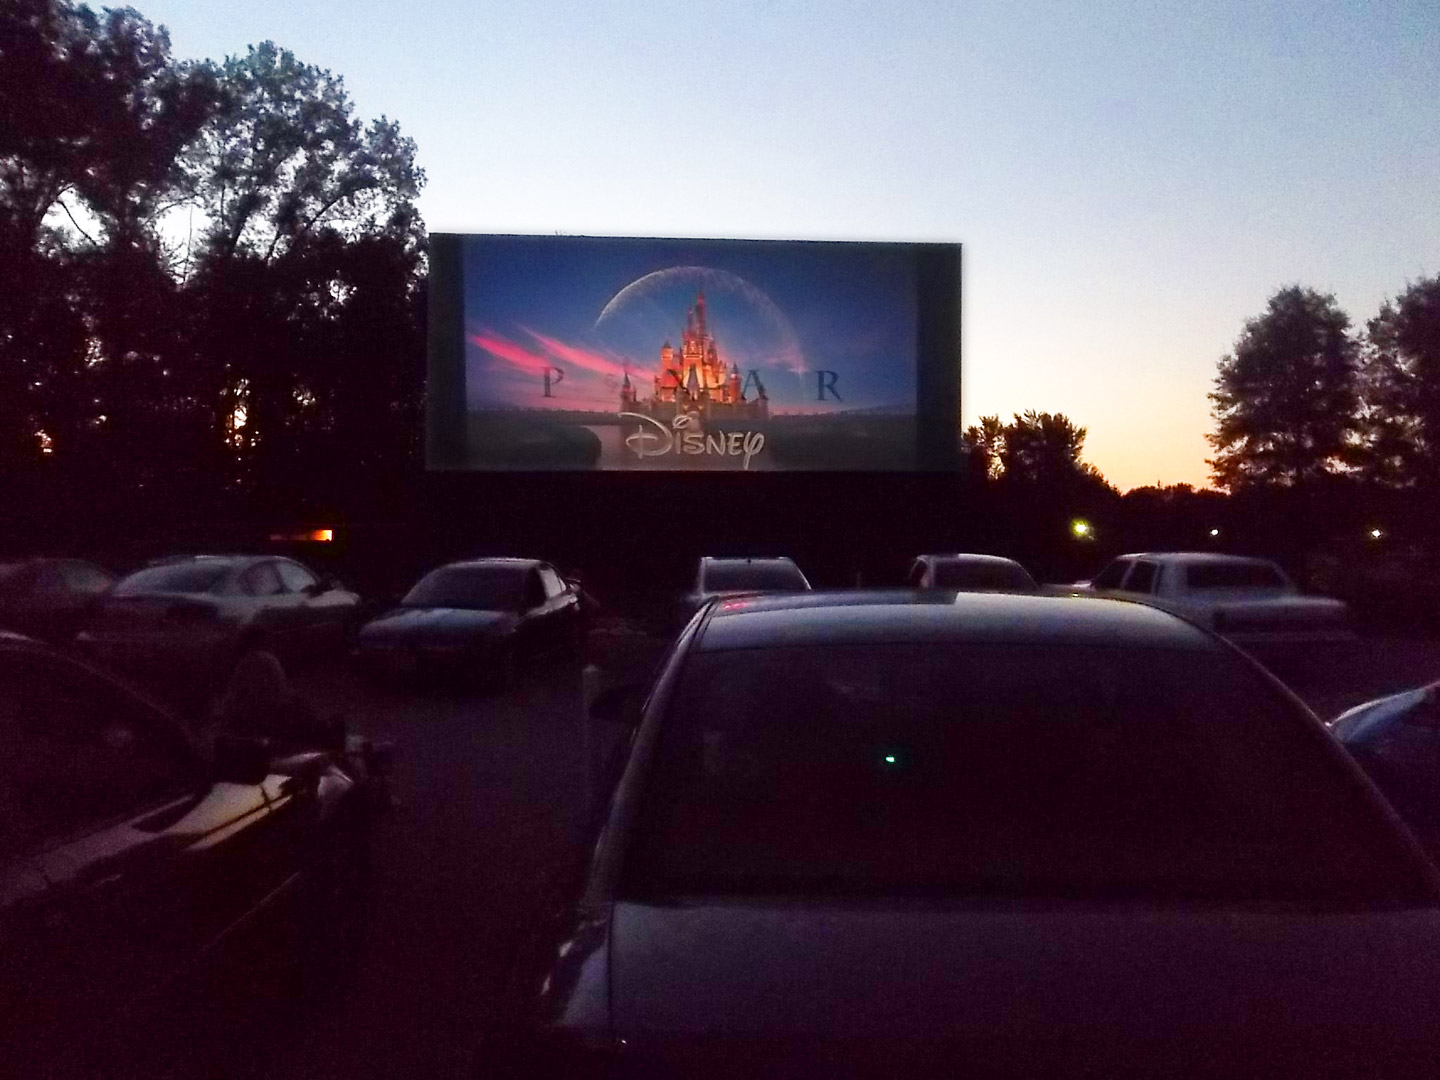 Trackbacks/Pingbacks. + Free Things for Kids and Families to do in San Antonio this Summer () - San Antonio Mom Blogs ™ - [ ] There are more than 80 free (and almost-free) indoor and outdoor movies for families this summer in San Antonio..